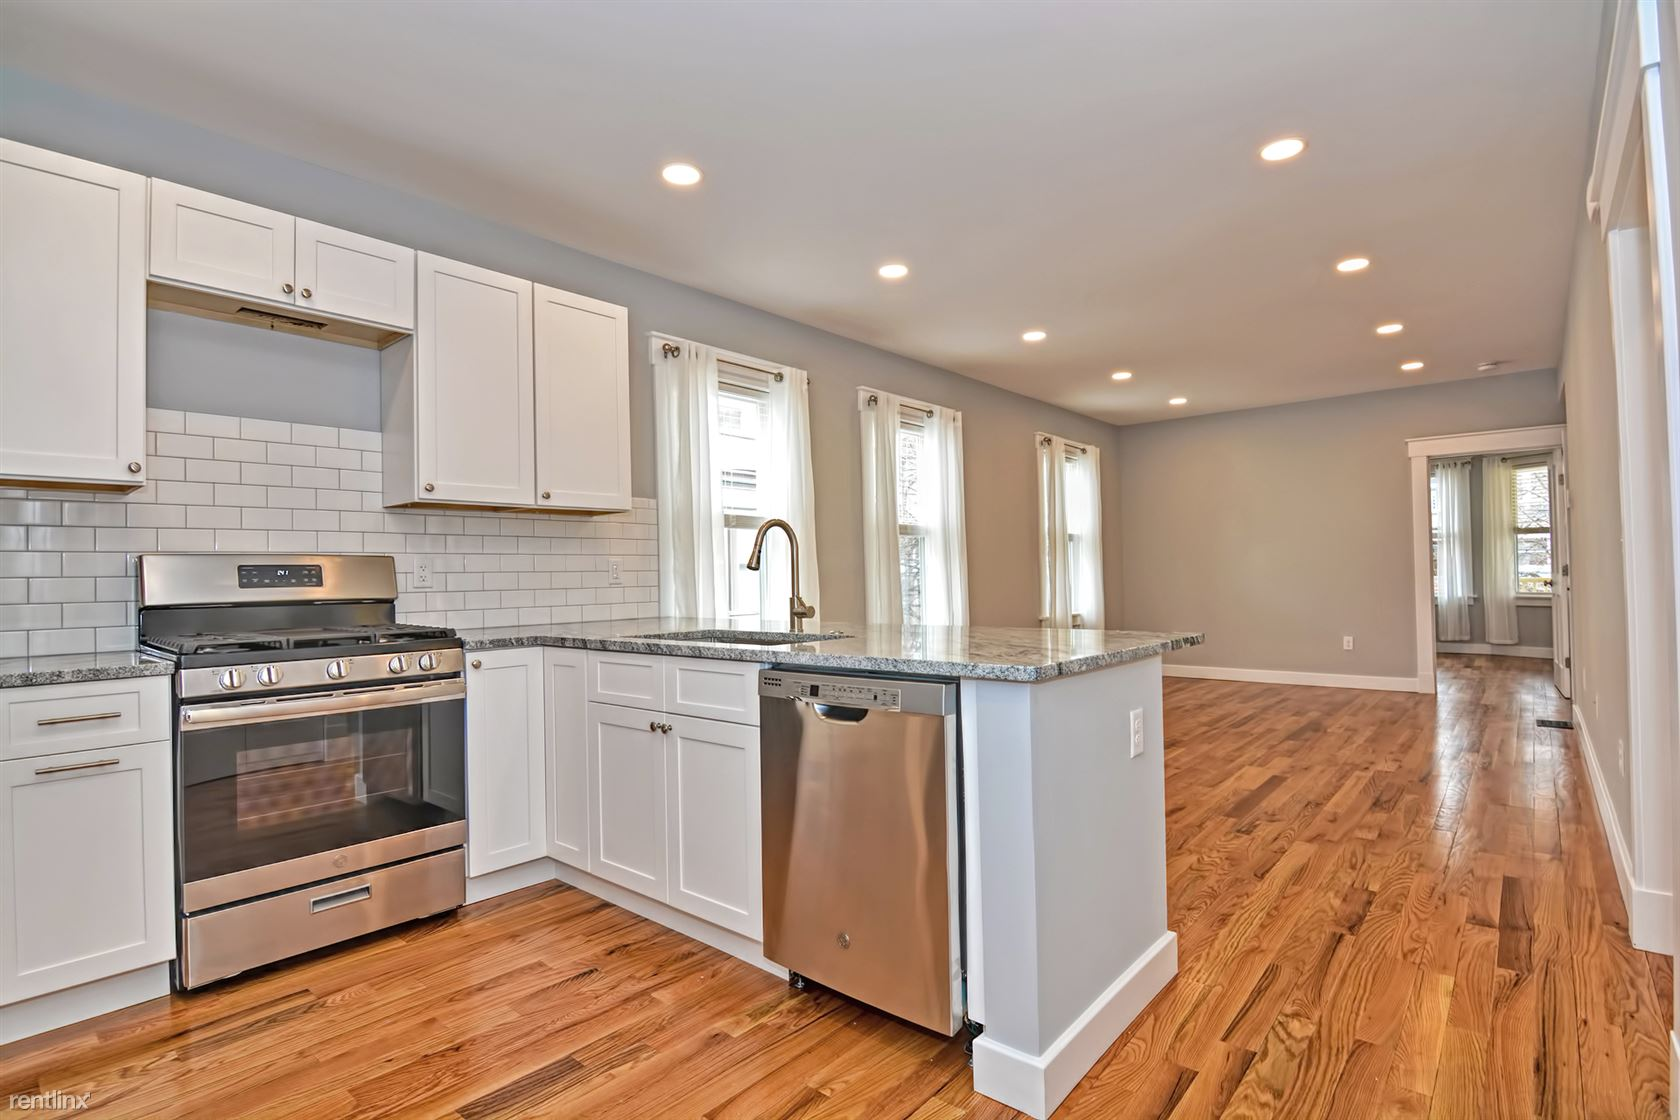 Apartment for Rent in New Haven